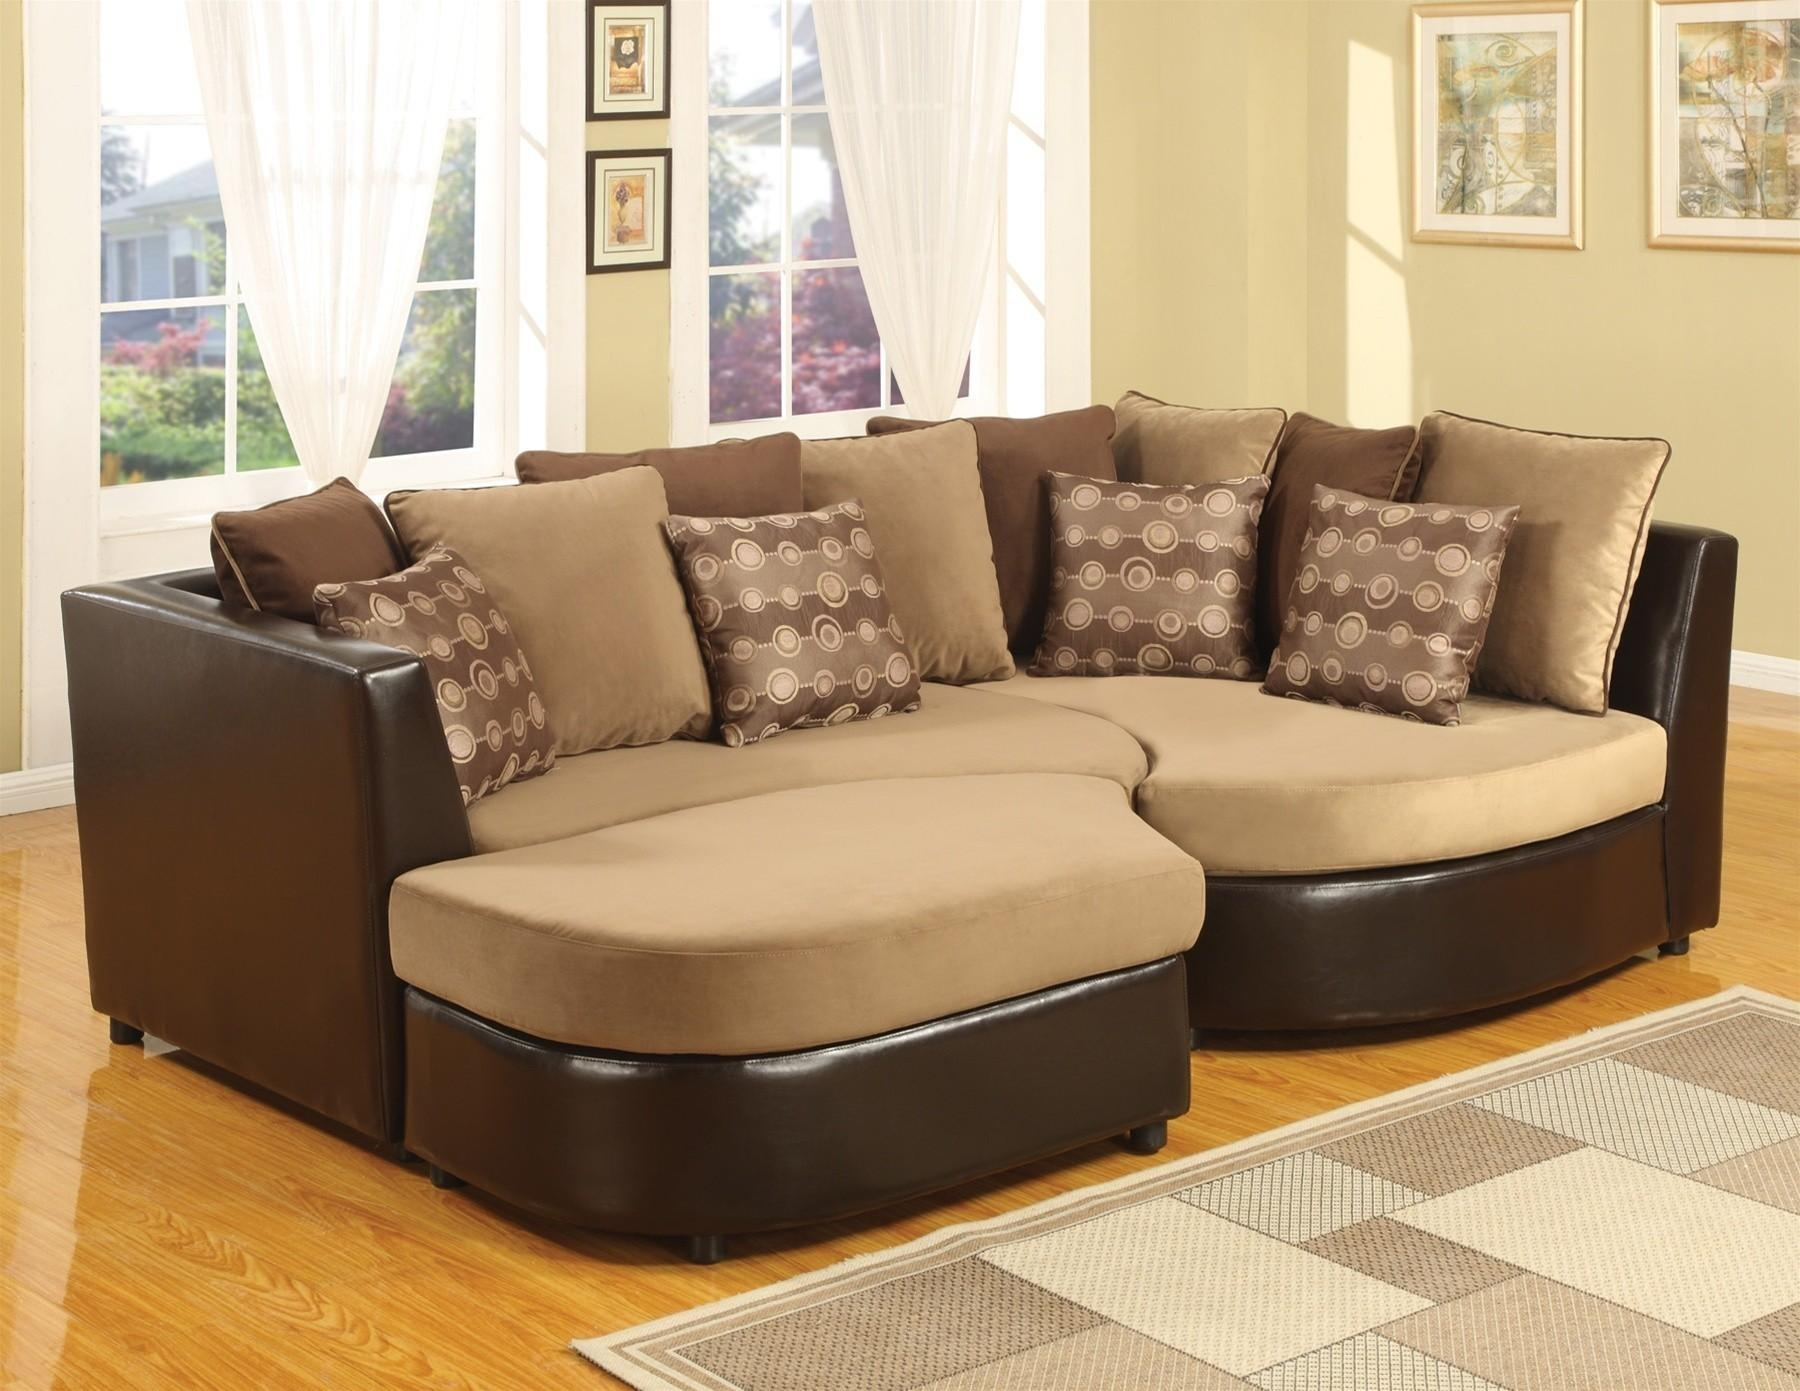 Ashley Marble 3 Piece Raf Sectional Sofa Chaise Armless Love In Deep Seat Leather Sectional (Image 1 of 15)